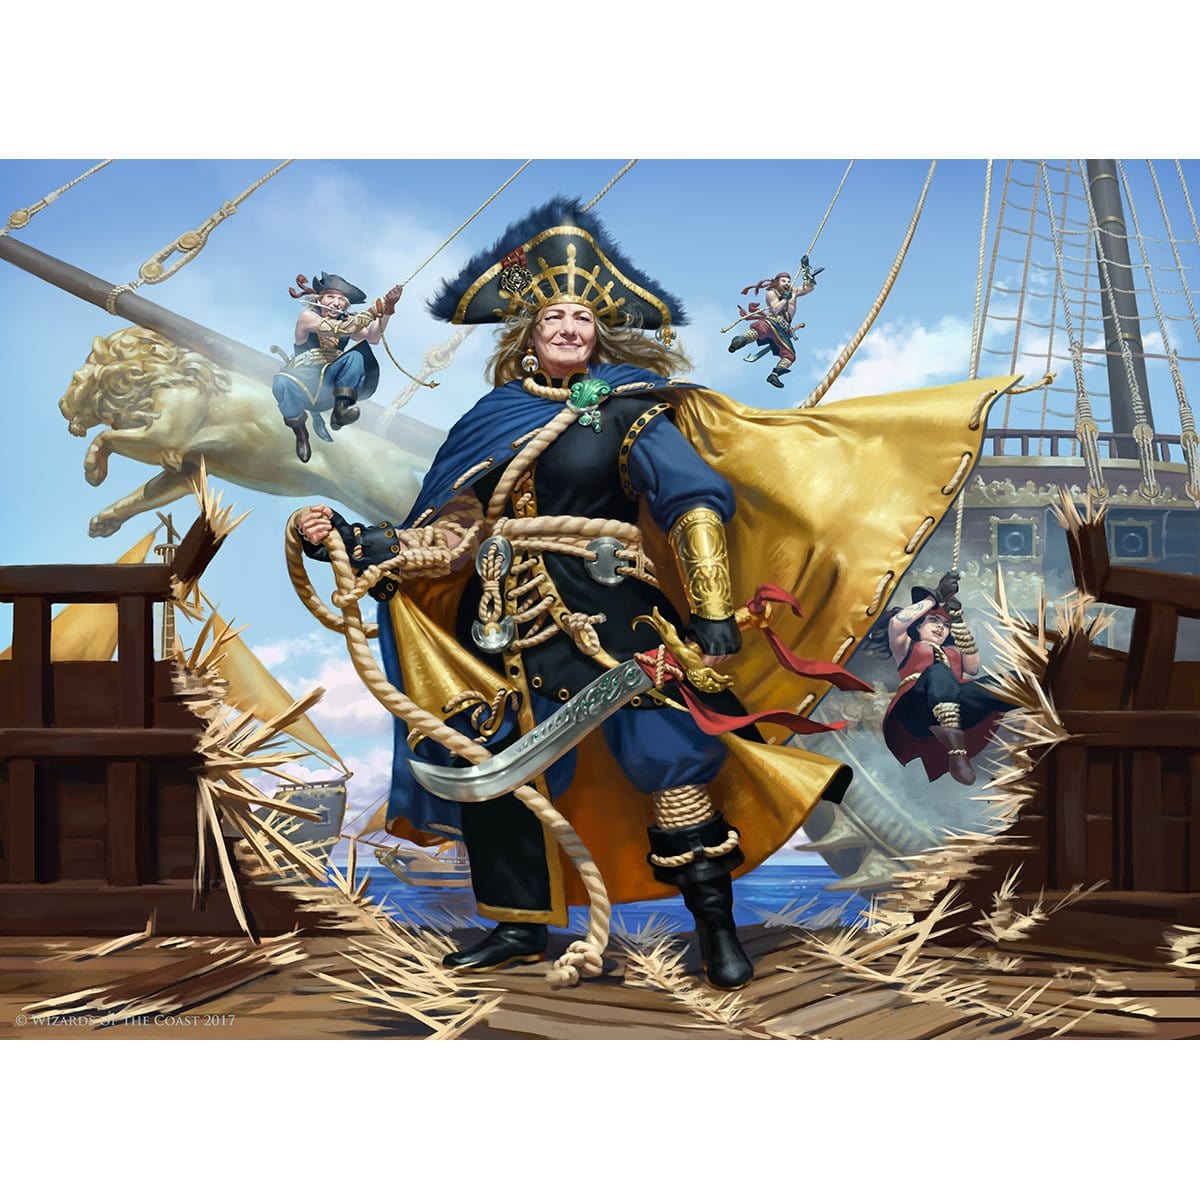 Admiral Beckett Brass Print - Print - Original Magic Art - Accessories for Magic the Gathering and other card games